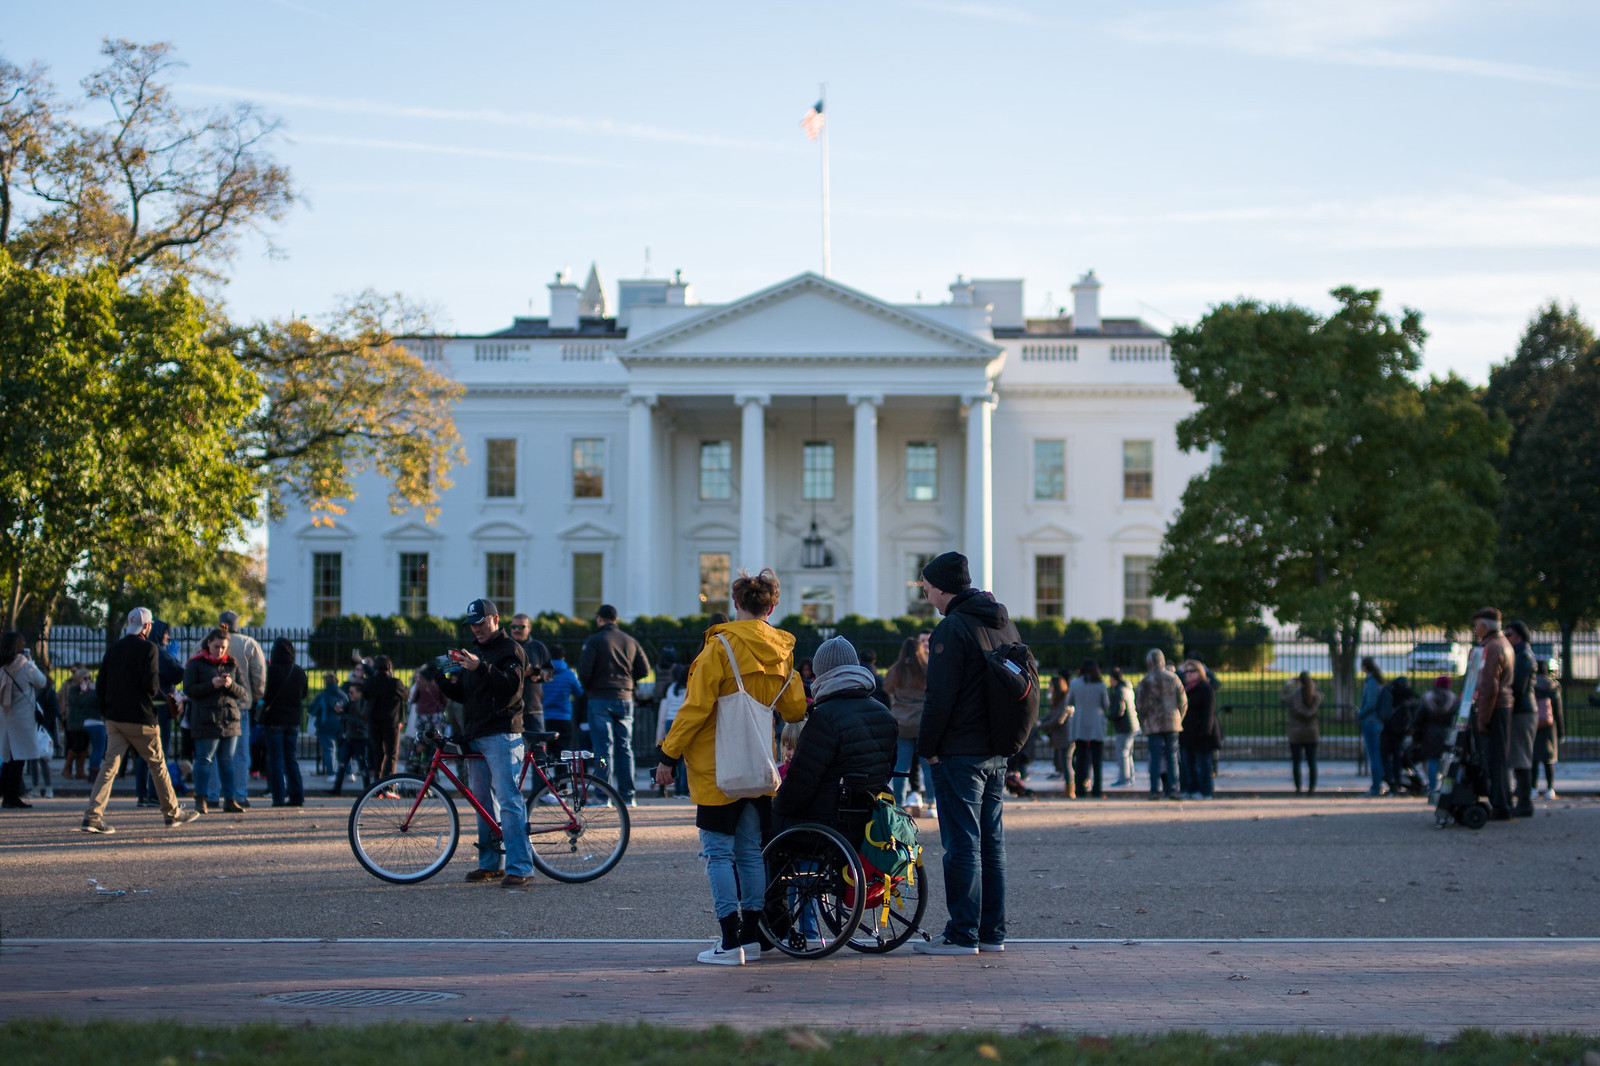 20171110_WashingtonDC_12